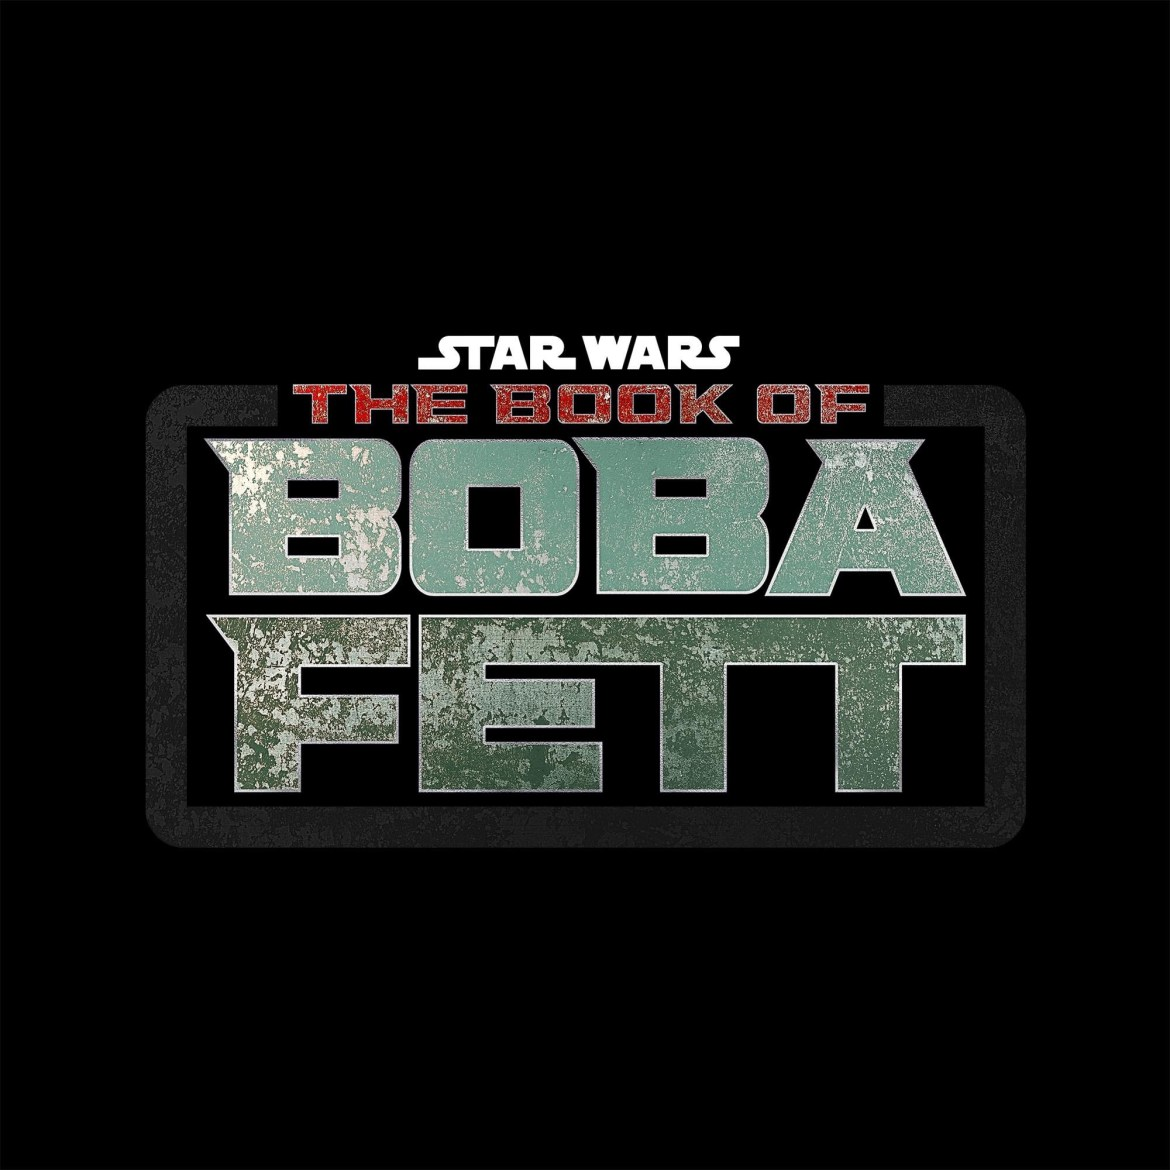 The Book of Boba Fett, a new Original Series, starring Temuera Morrison and Ming-Na Wen and executive produced by Jon Favreau, Dave Filoni and Robert Rodriguez, set within the timeline of The Mandalorian, is coming to Disney+ Dec. 2021.